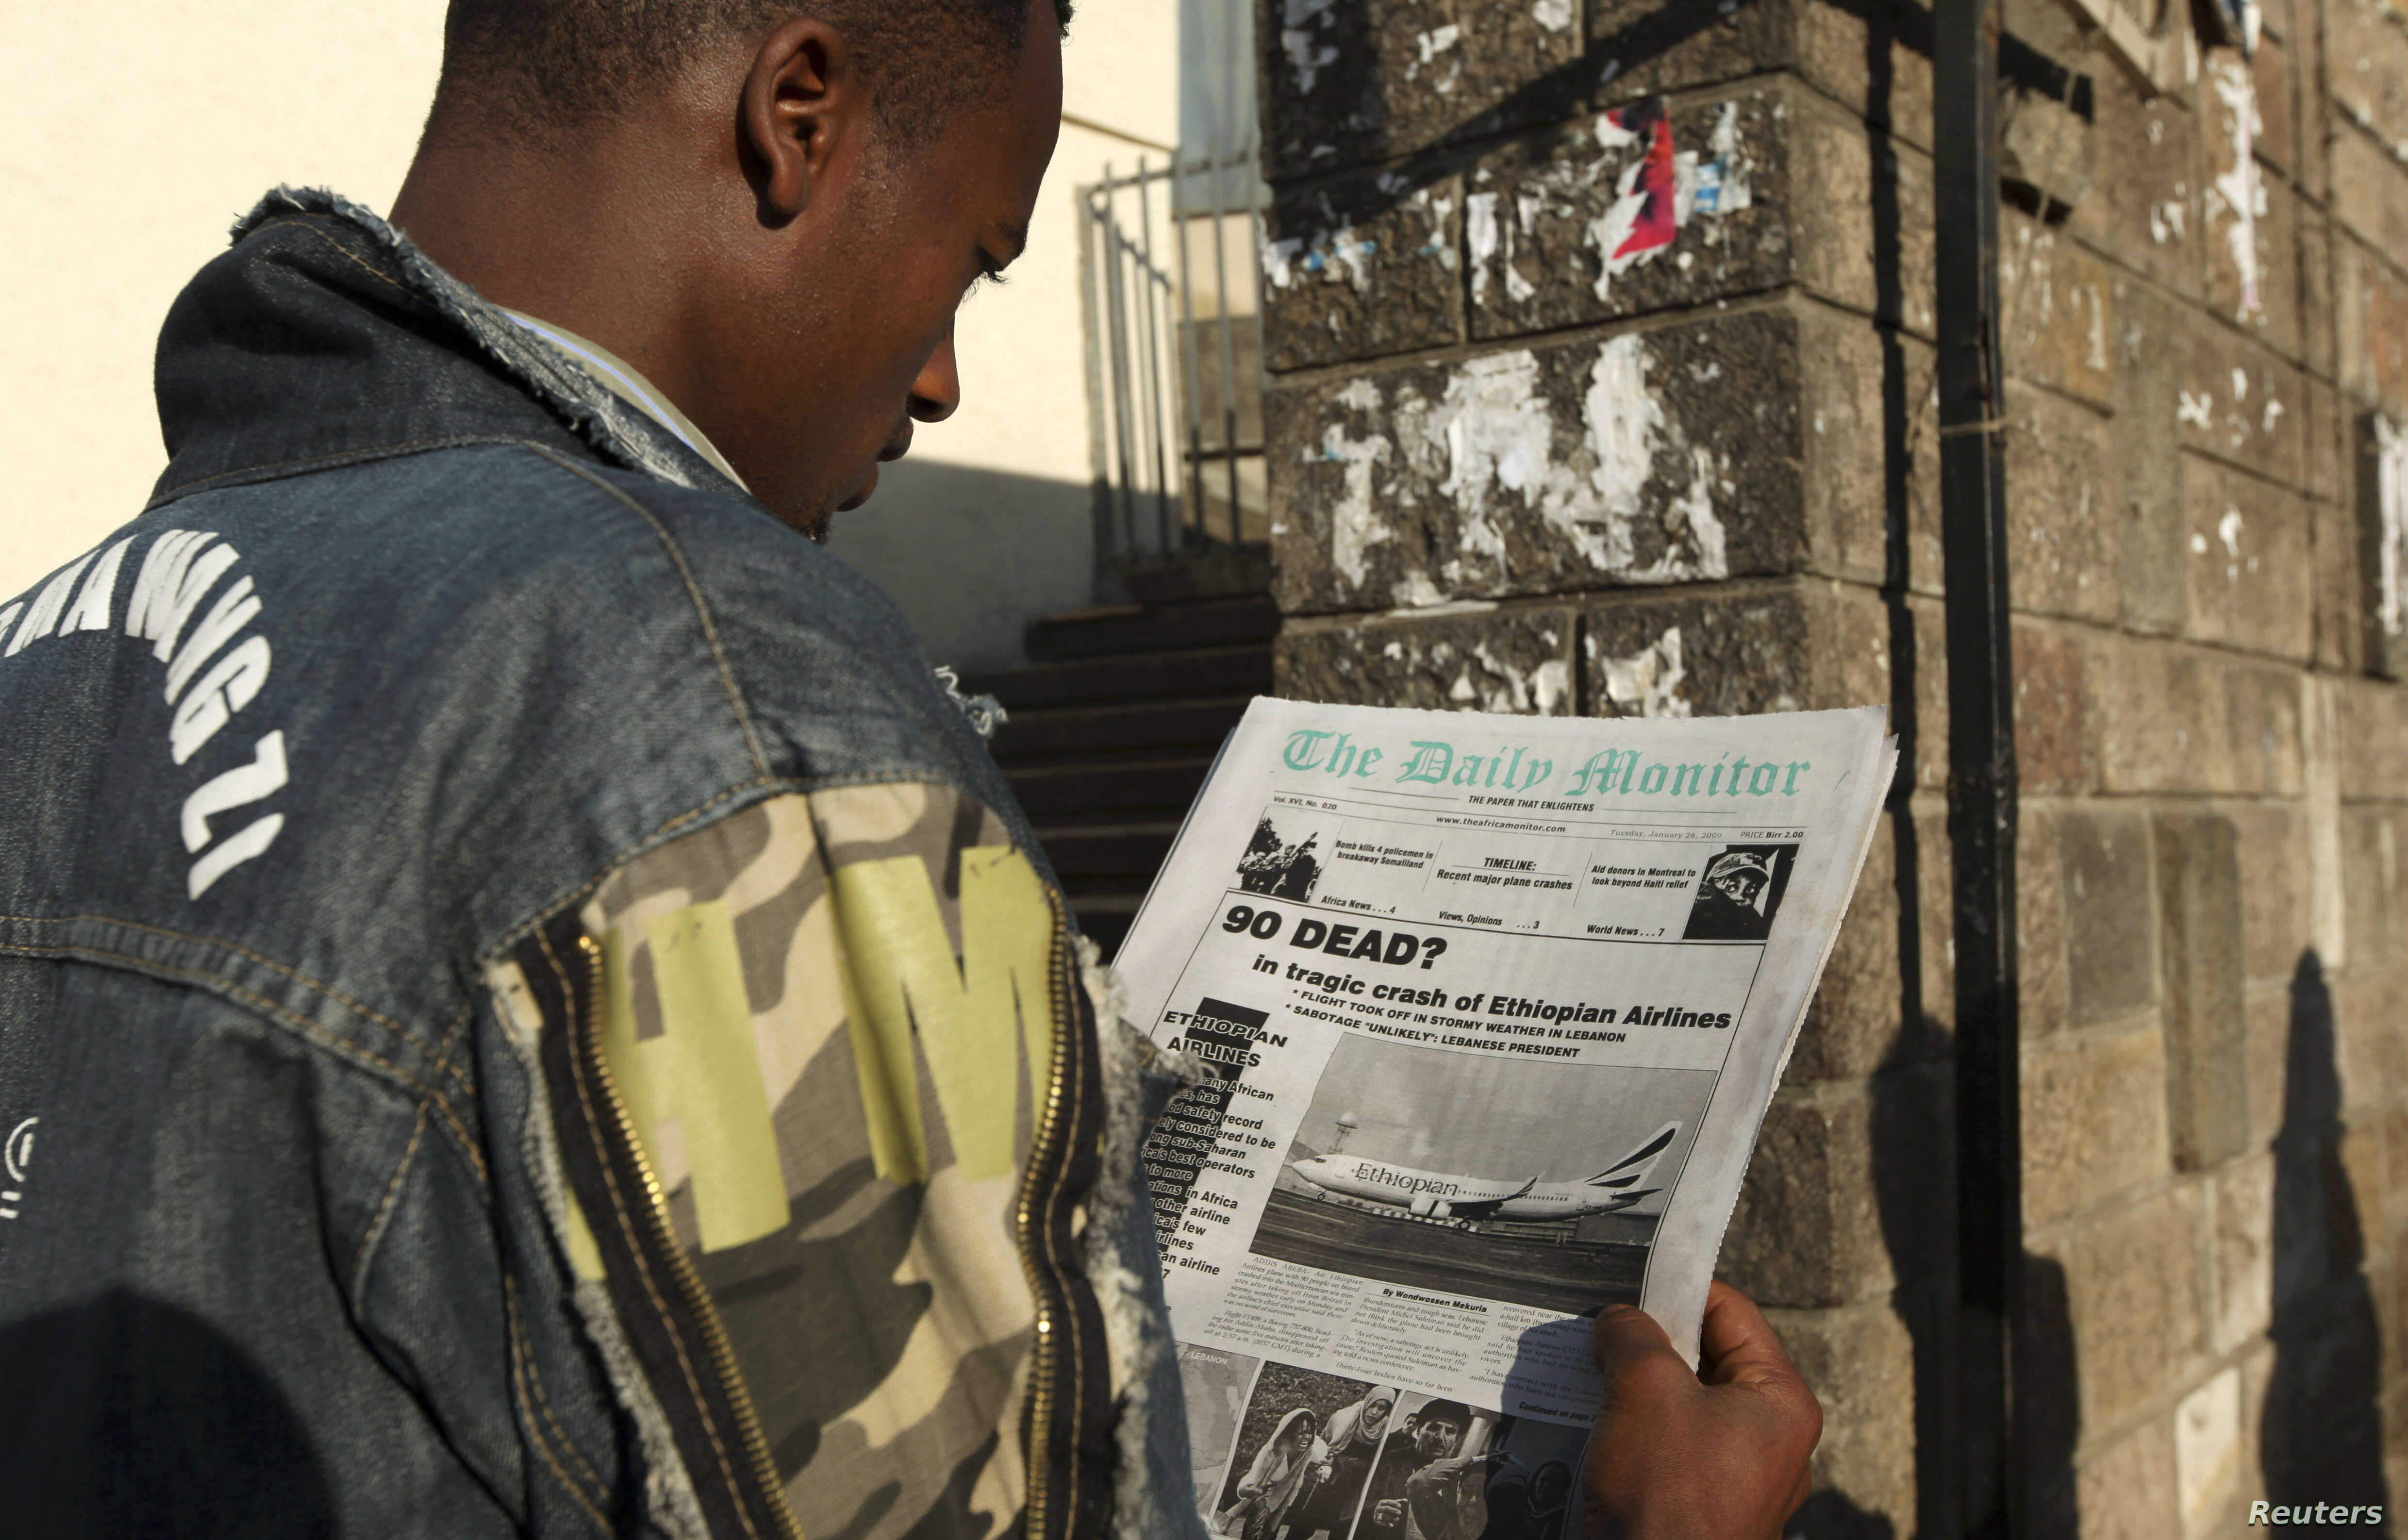 Little to Celebrate in Ethiopia During World Press Freedom Day